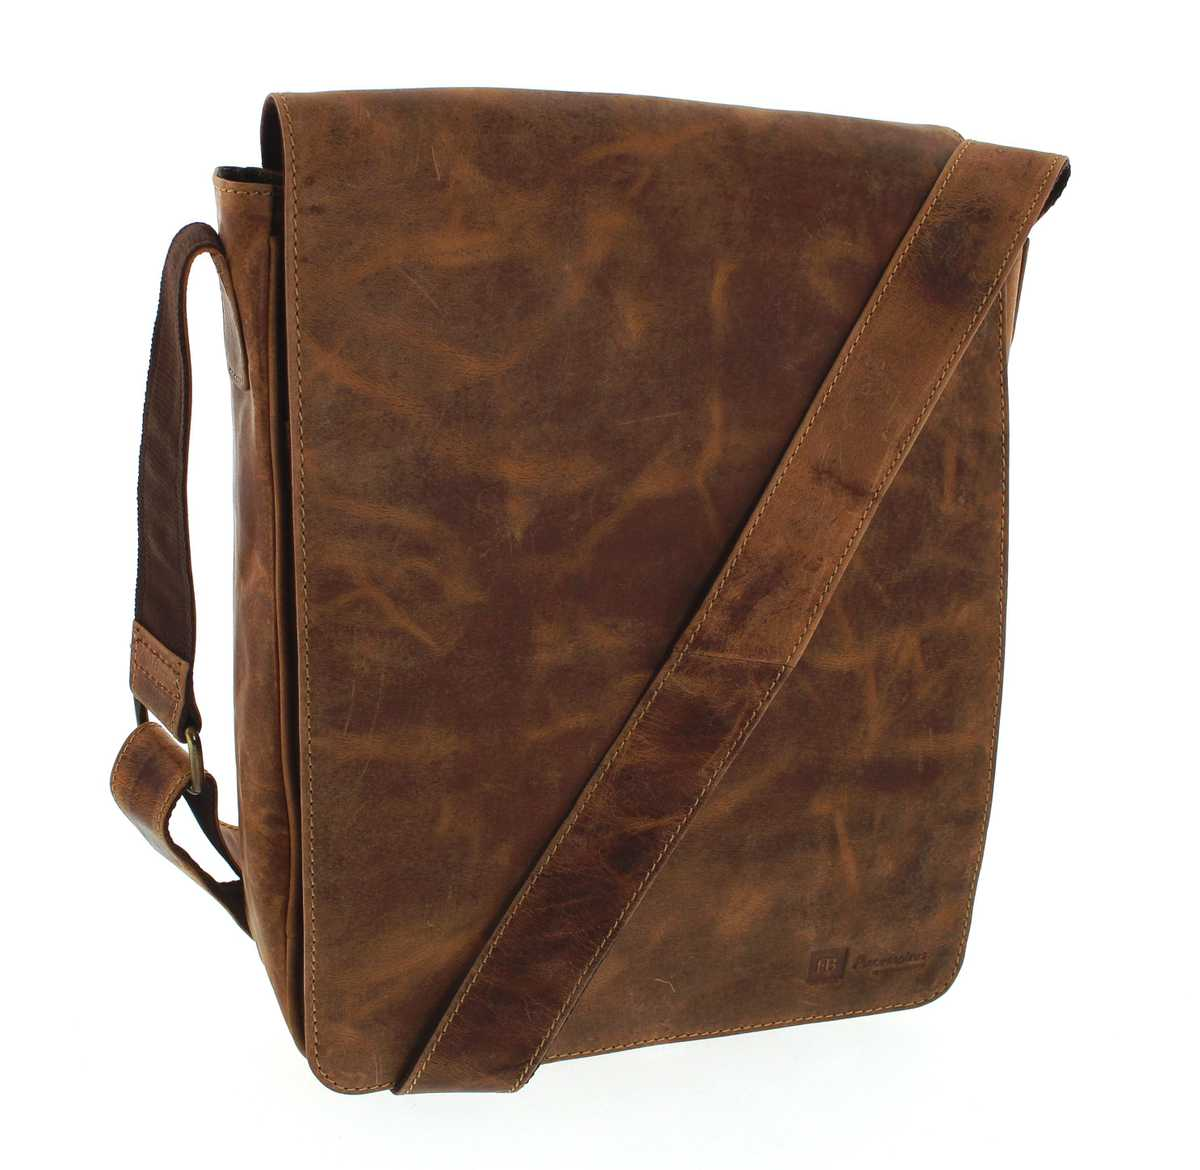 Fashion Boots FB Bags 846 Messenger Bag Distressed Red leatherbag